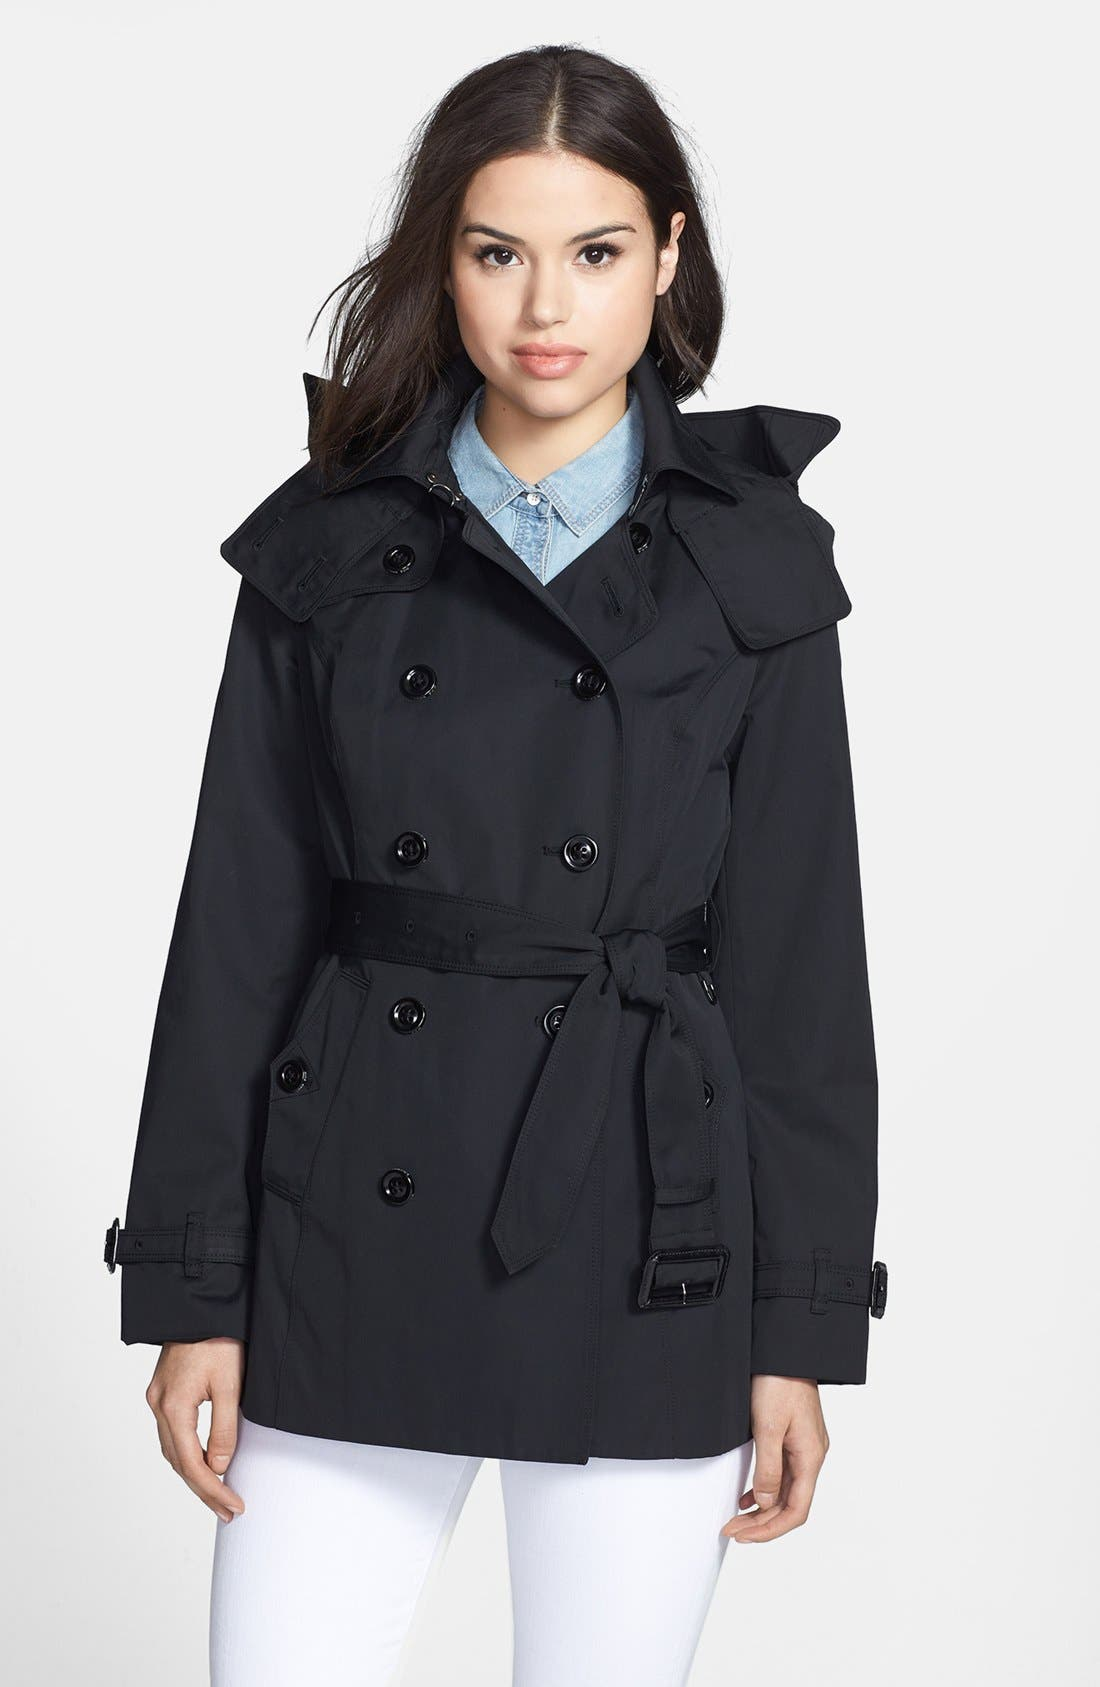 Heritage Trench Coat with Detachable Hood,                         Main,                         color, Black